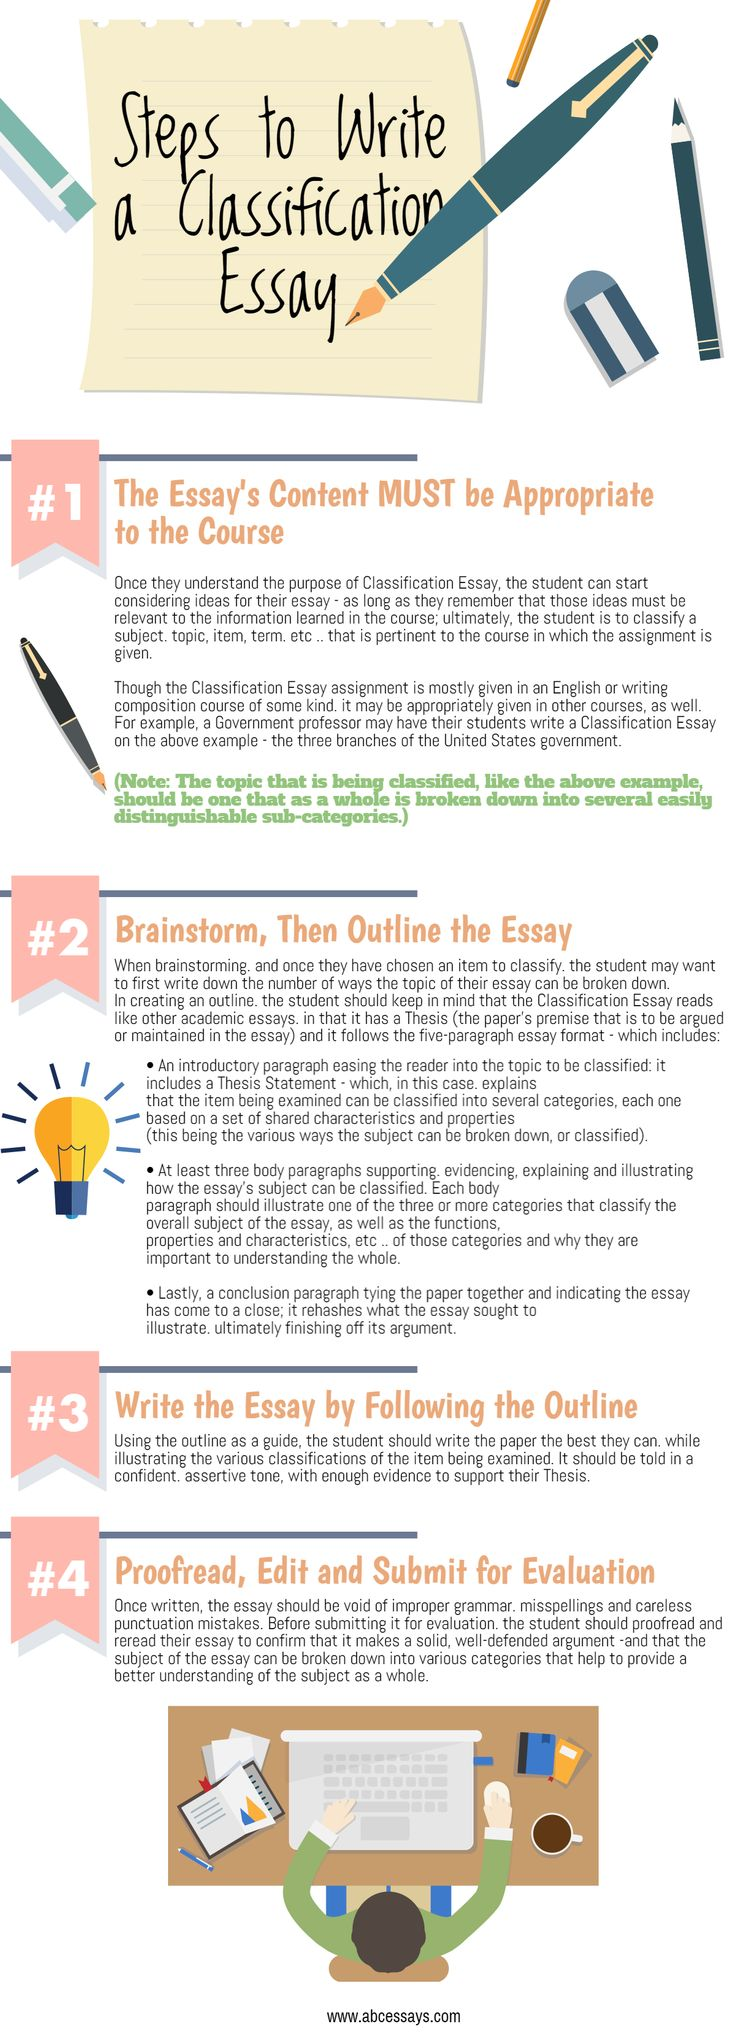 a classification essay outline How to write a classification essay: format, structure, topics, outline, examples.